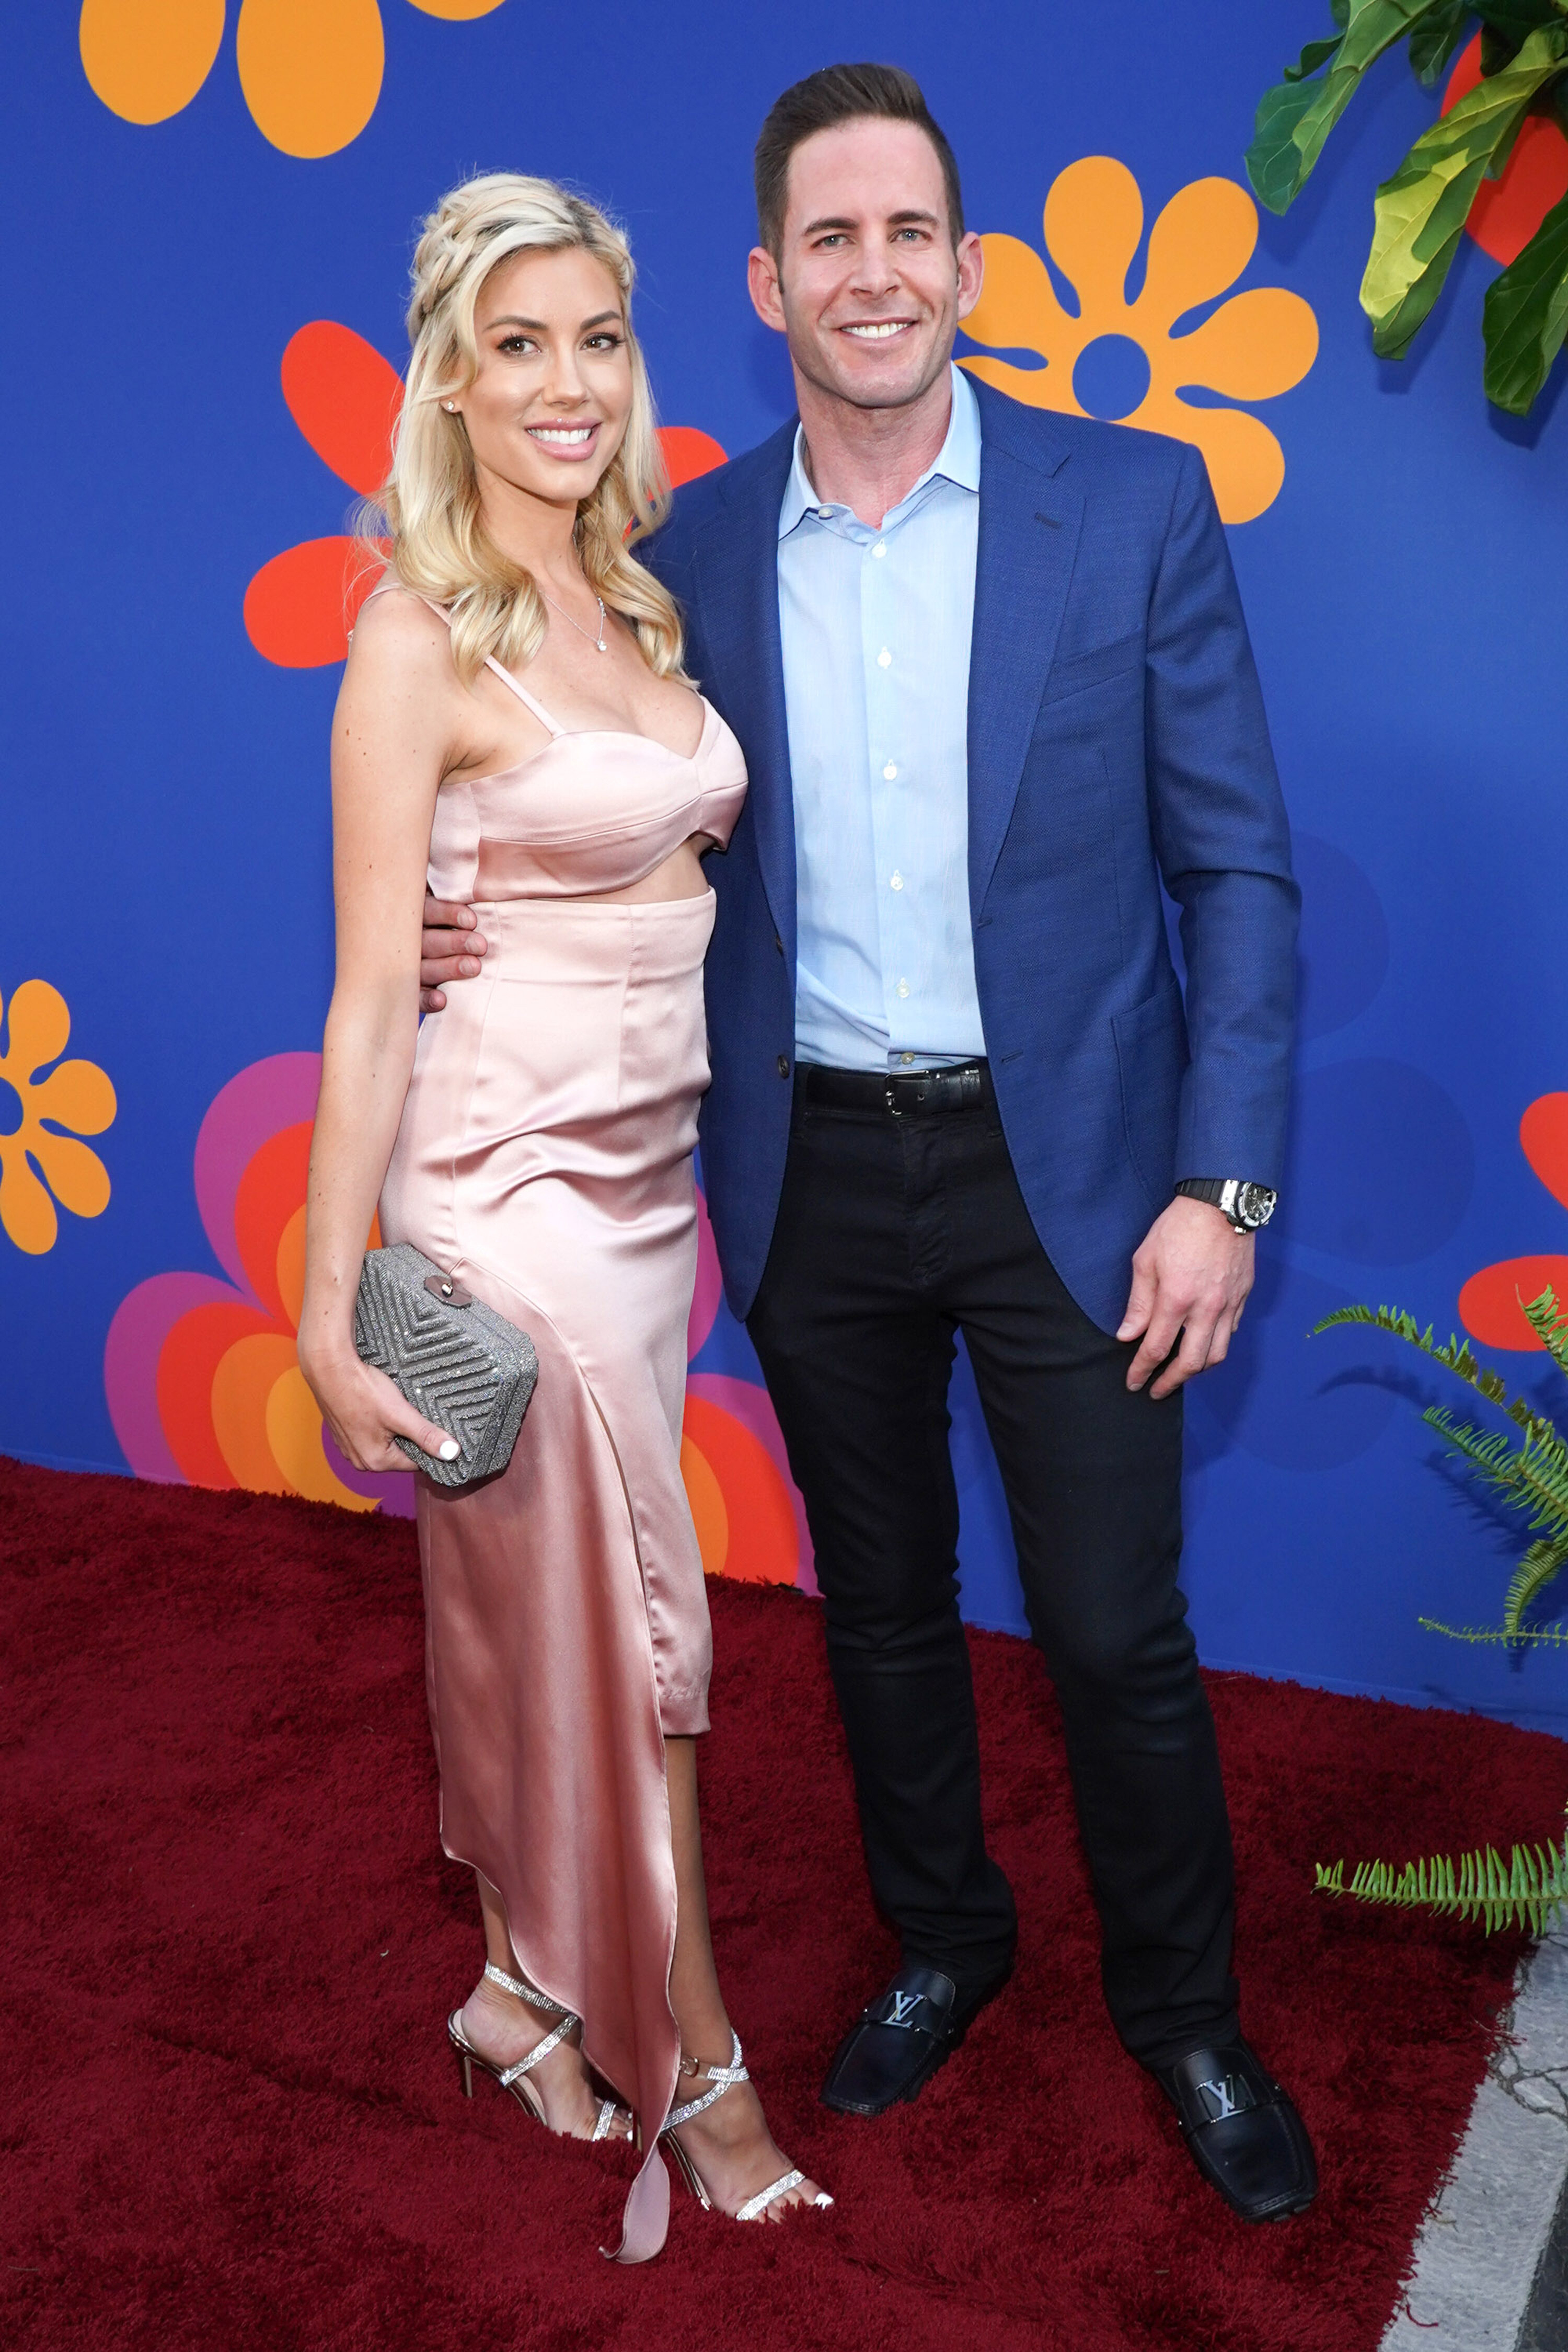 'Flip or Flop' star Tarek El Moussa marries 'Selling Sunset' star Heather Rae Young